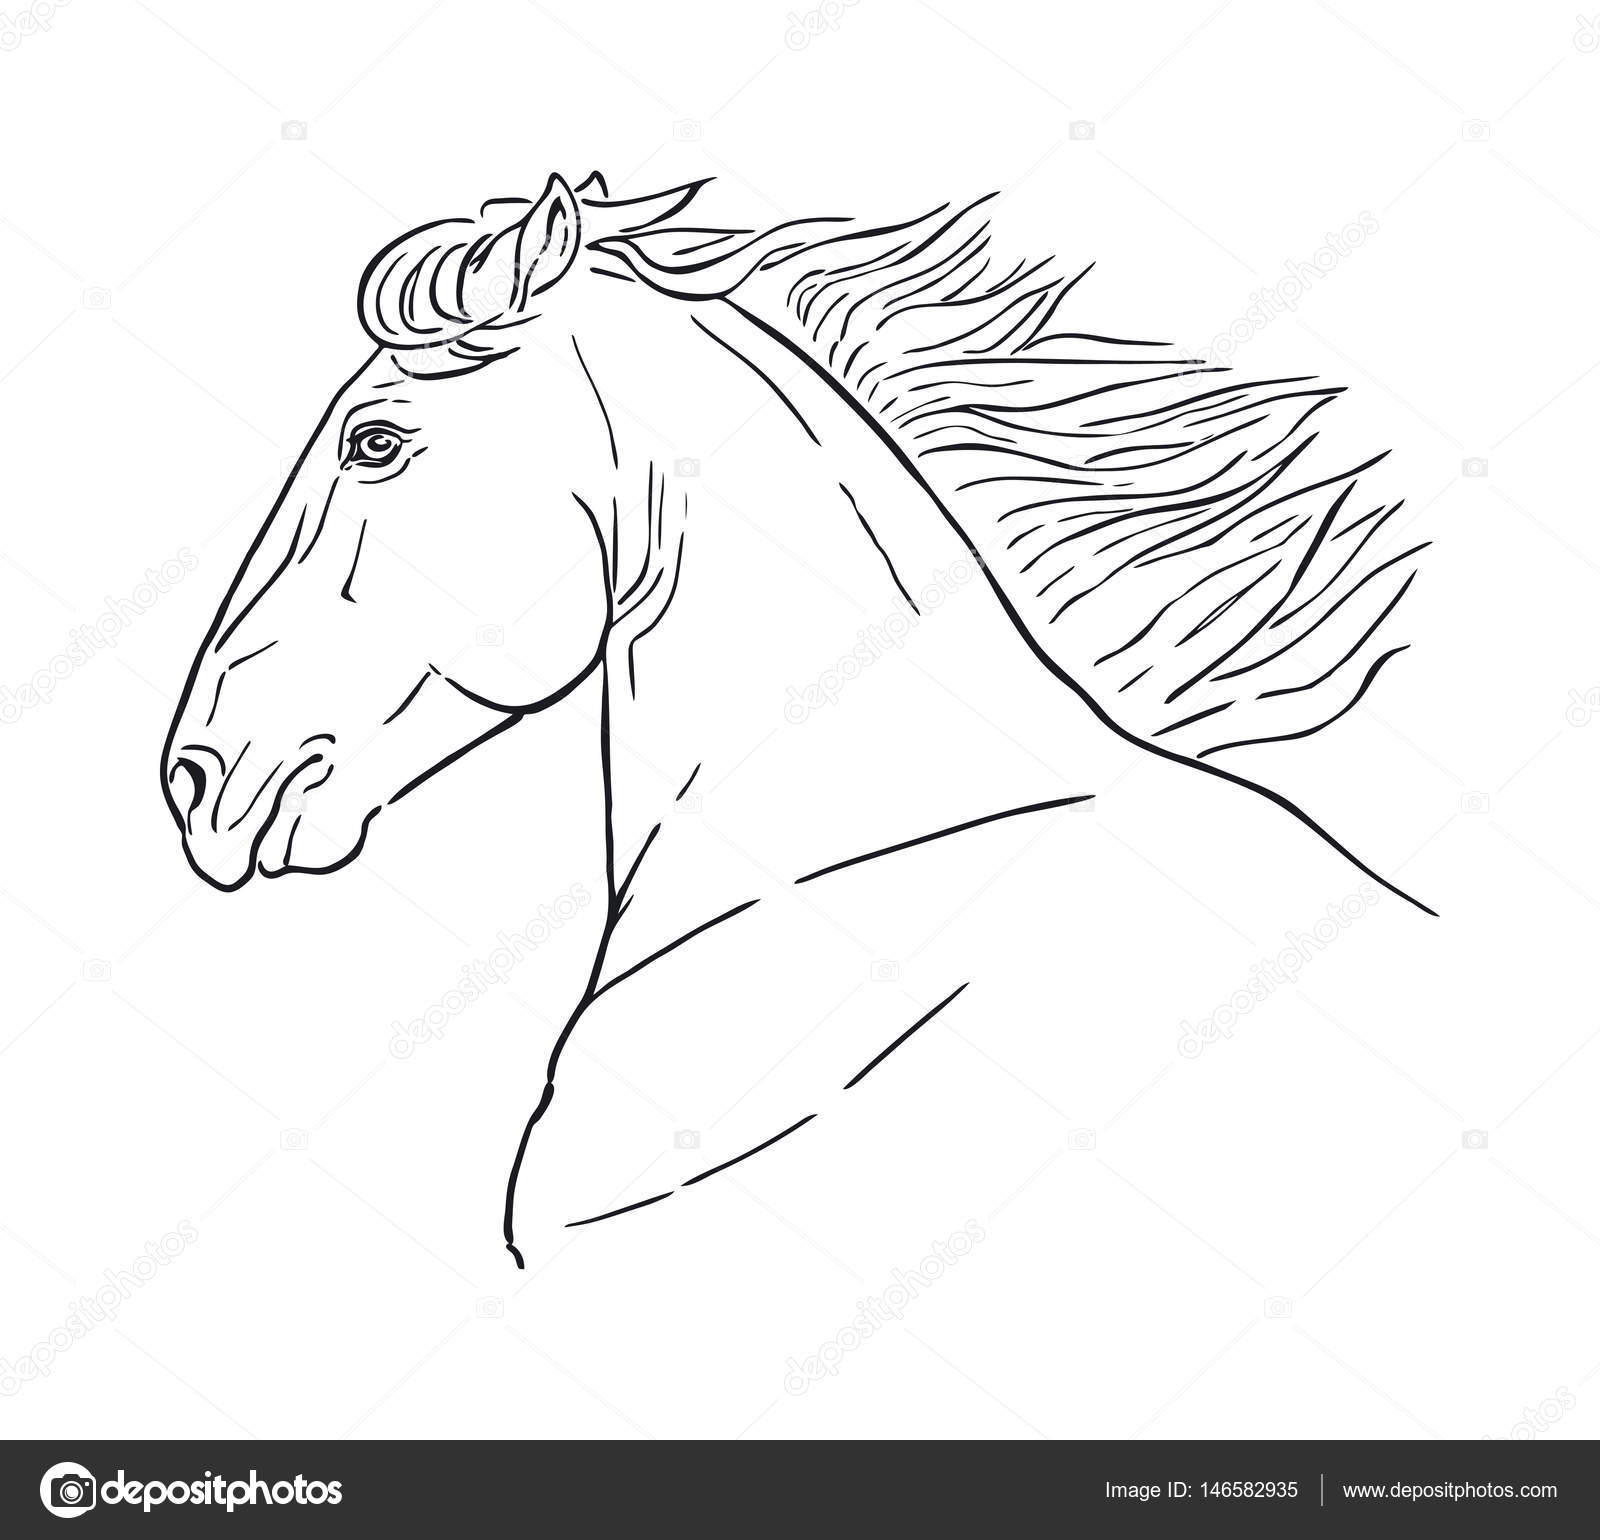 Drawings Line Drawing Of A Horse Line Drawing Of A Horse S Head On A White Background Running Horse Head Stock Vector C Martanovak 146582935